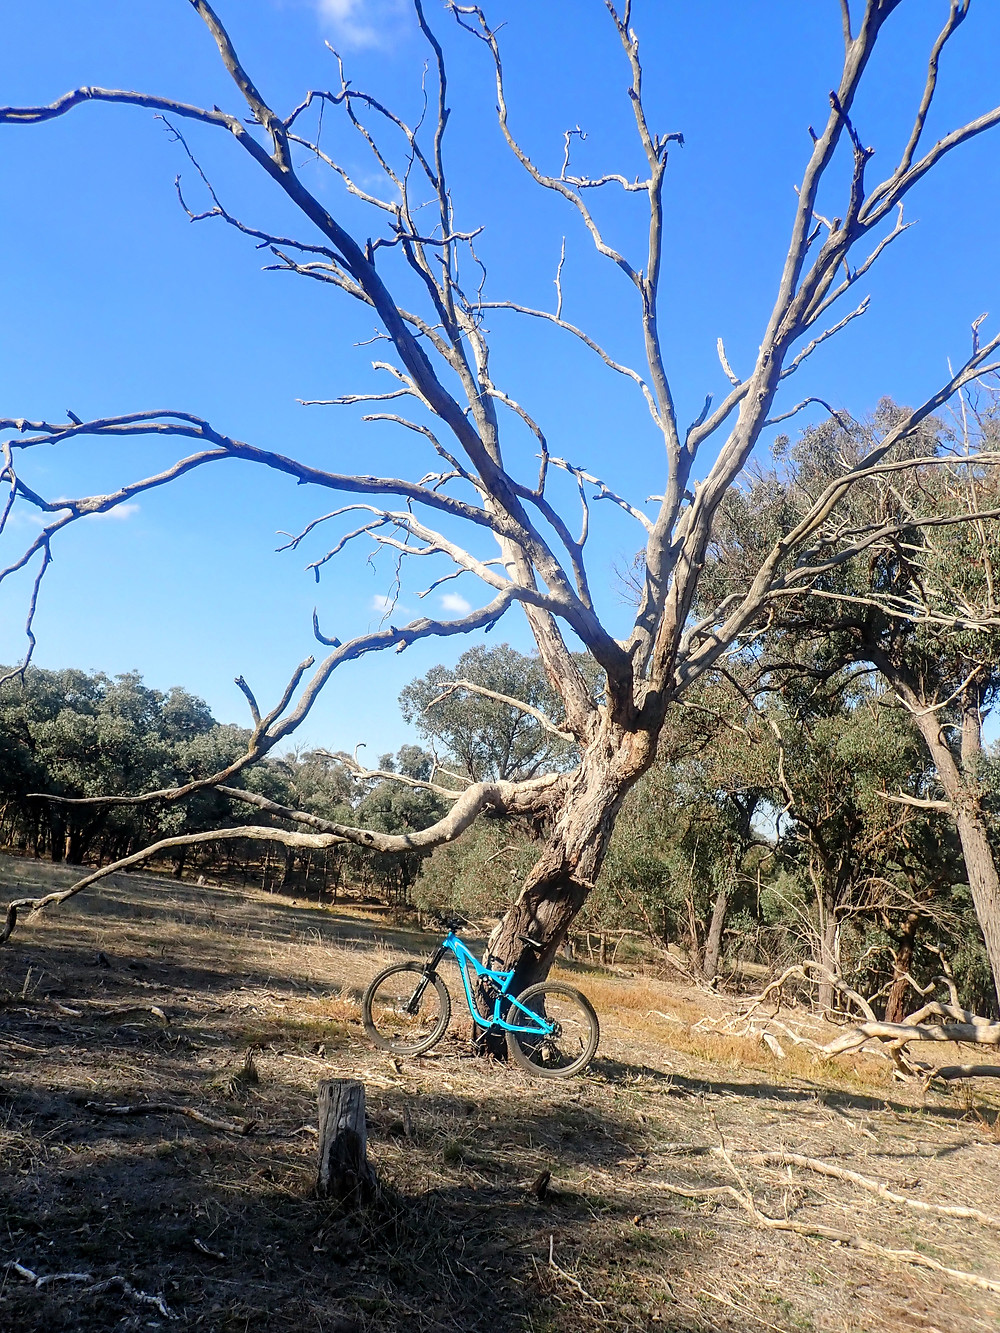 My bike Stumpy, leaning against a spooky dead tree, at the point I later camped